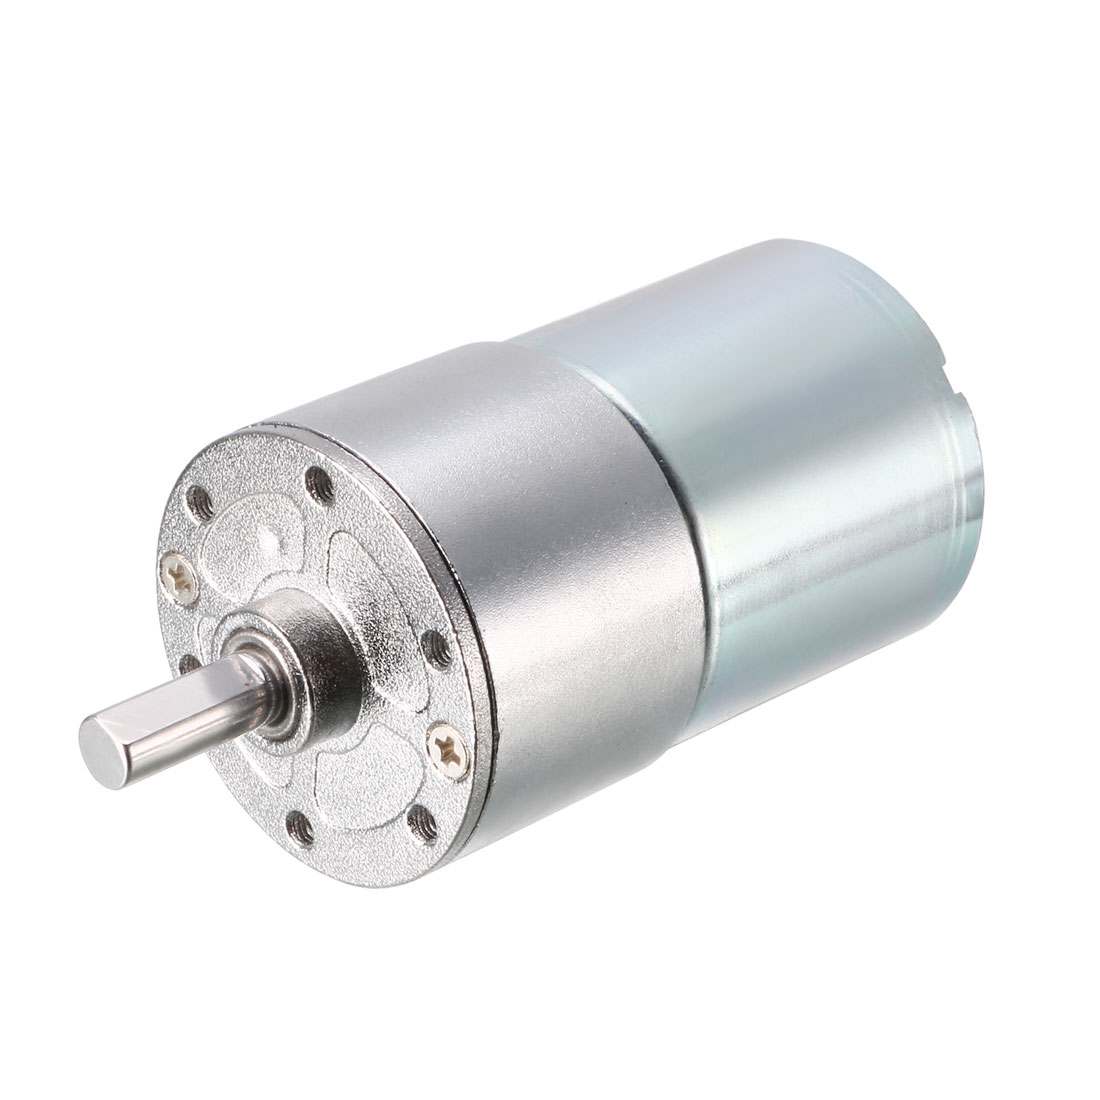 12V DC 100 RPM Gear Motor High Torque Reduction Gearbox Centric Output Shaft